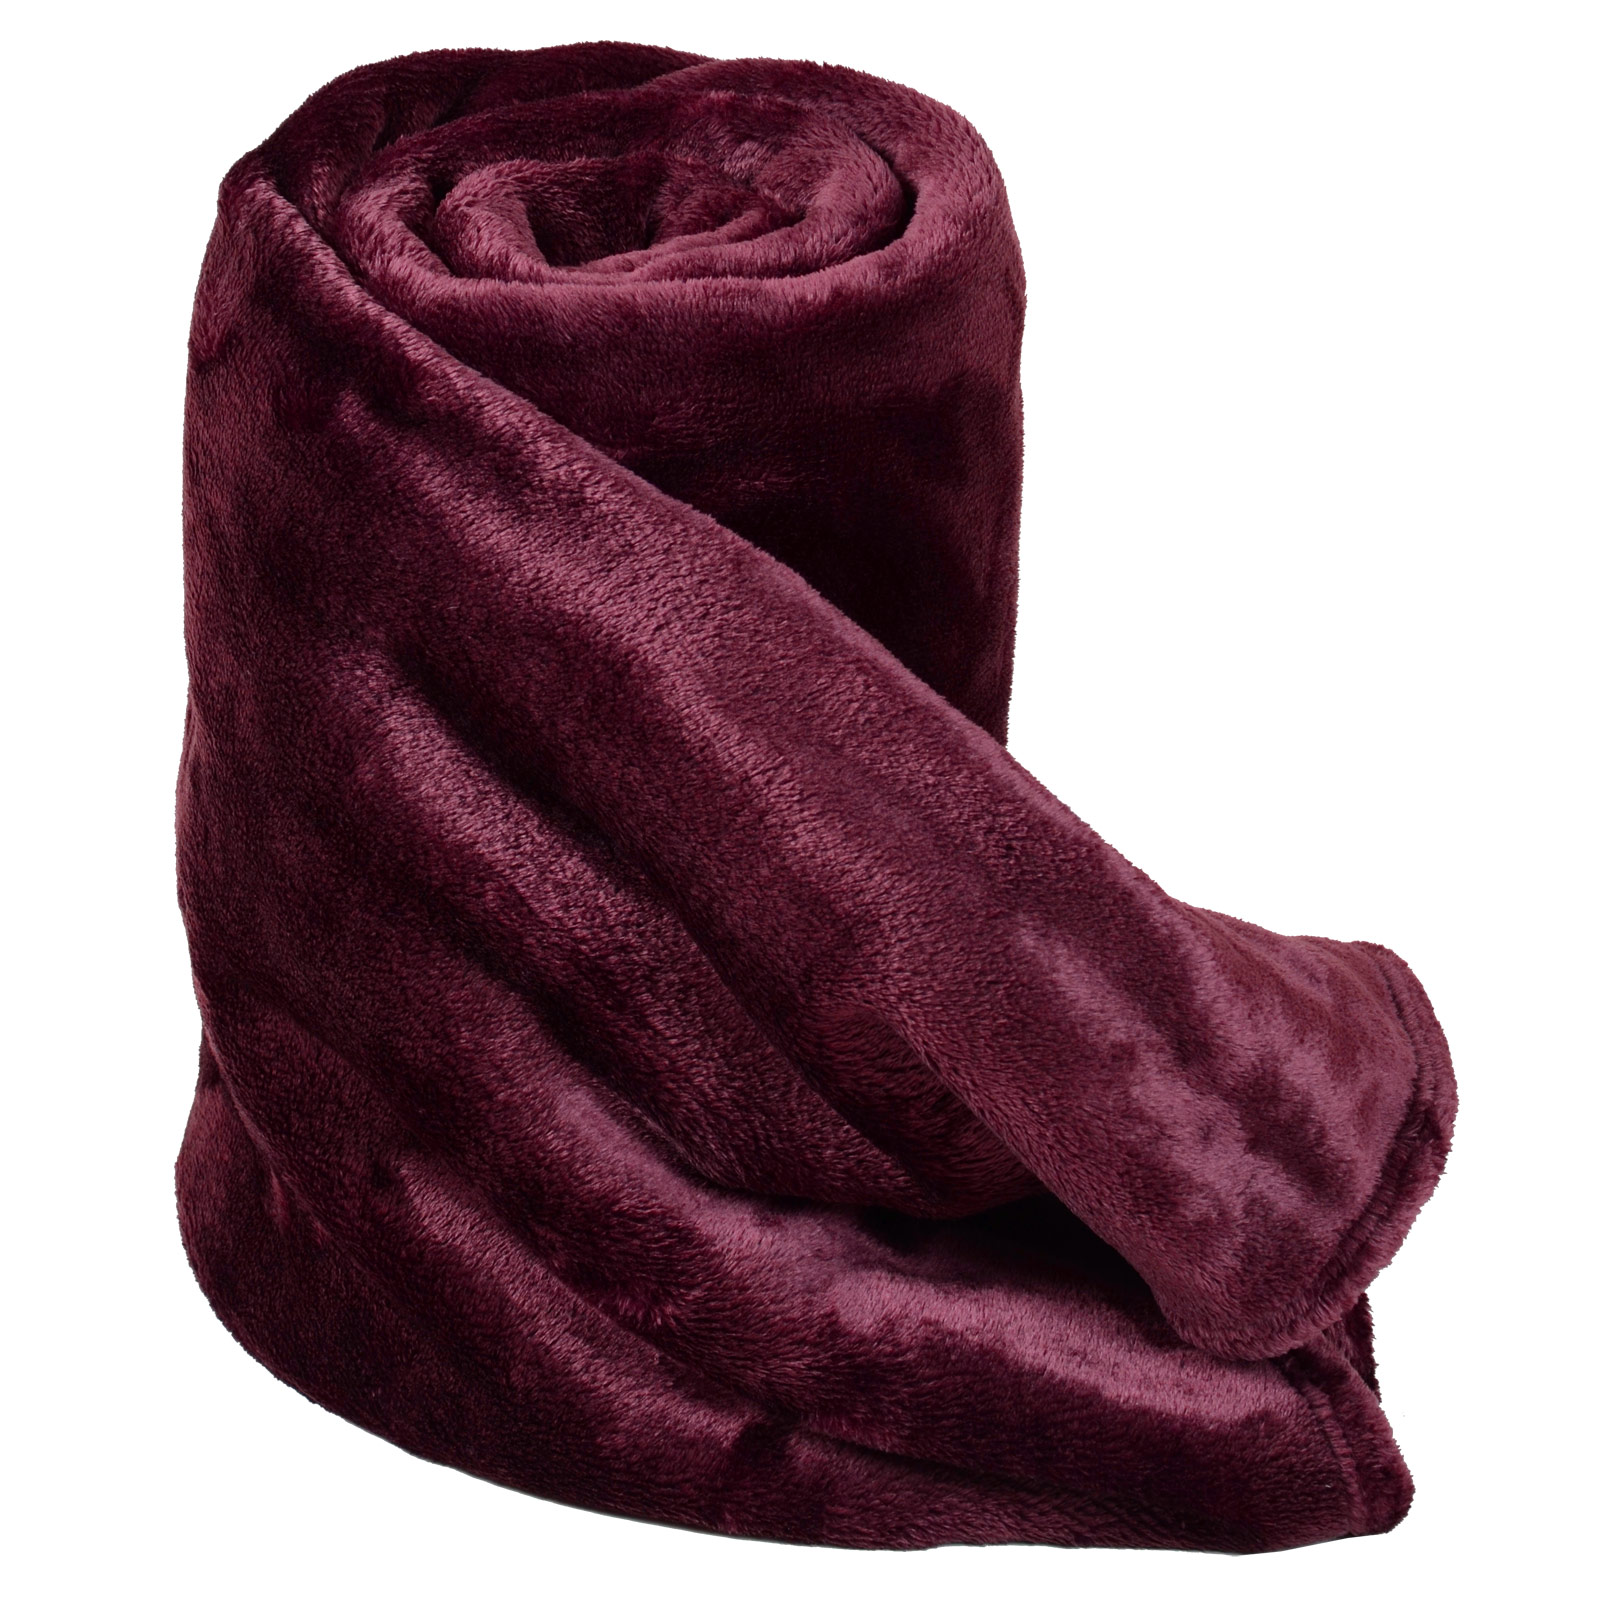 Deluxe plush fleece blanket soft cashmere touch luxury for Soft blankets and throws